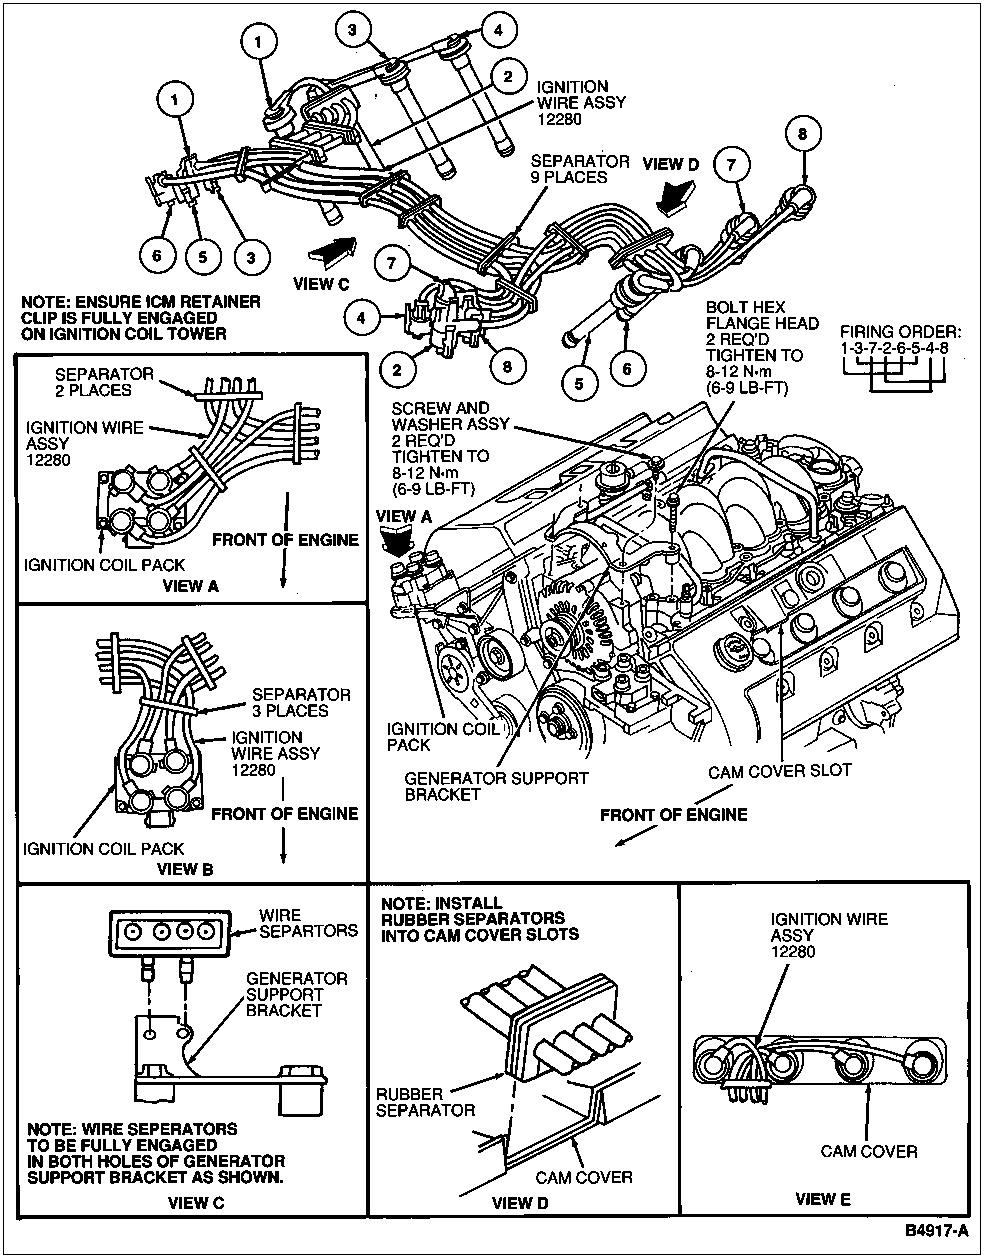 06 lincoln town car engine diagram - wiring diagrams relax huge-fear -  huge-fear.quado.it  huge-fear.quado.it